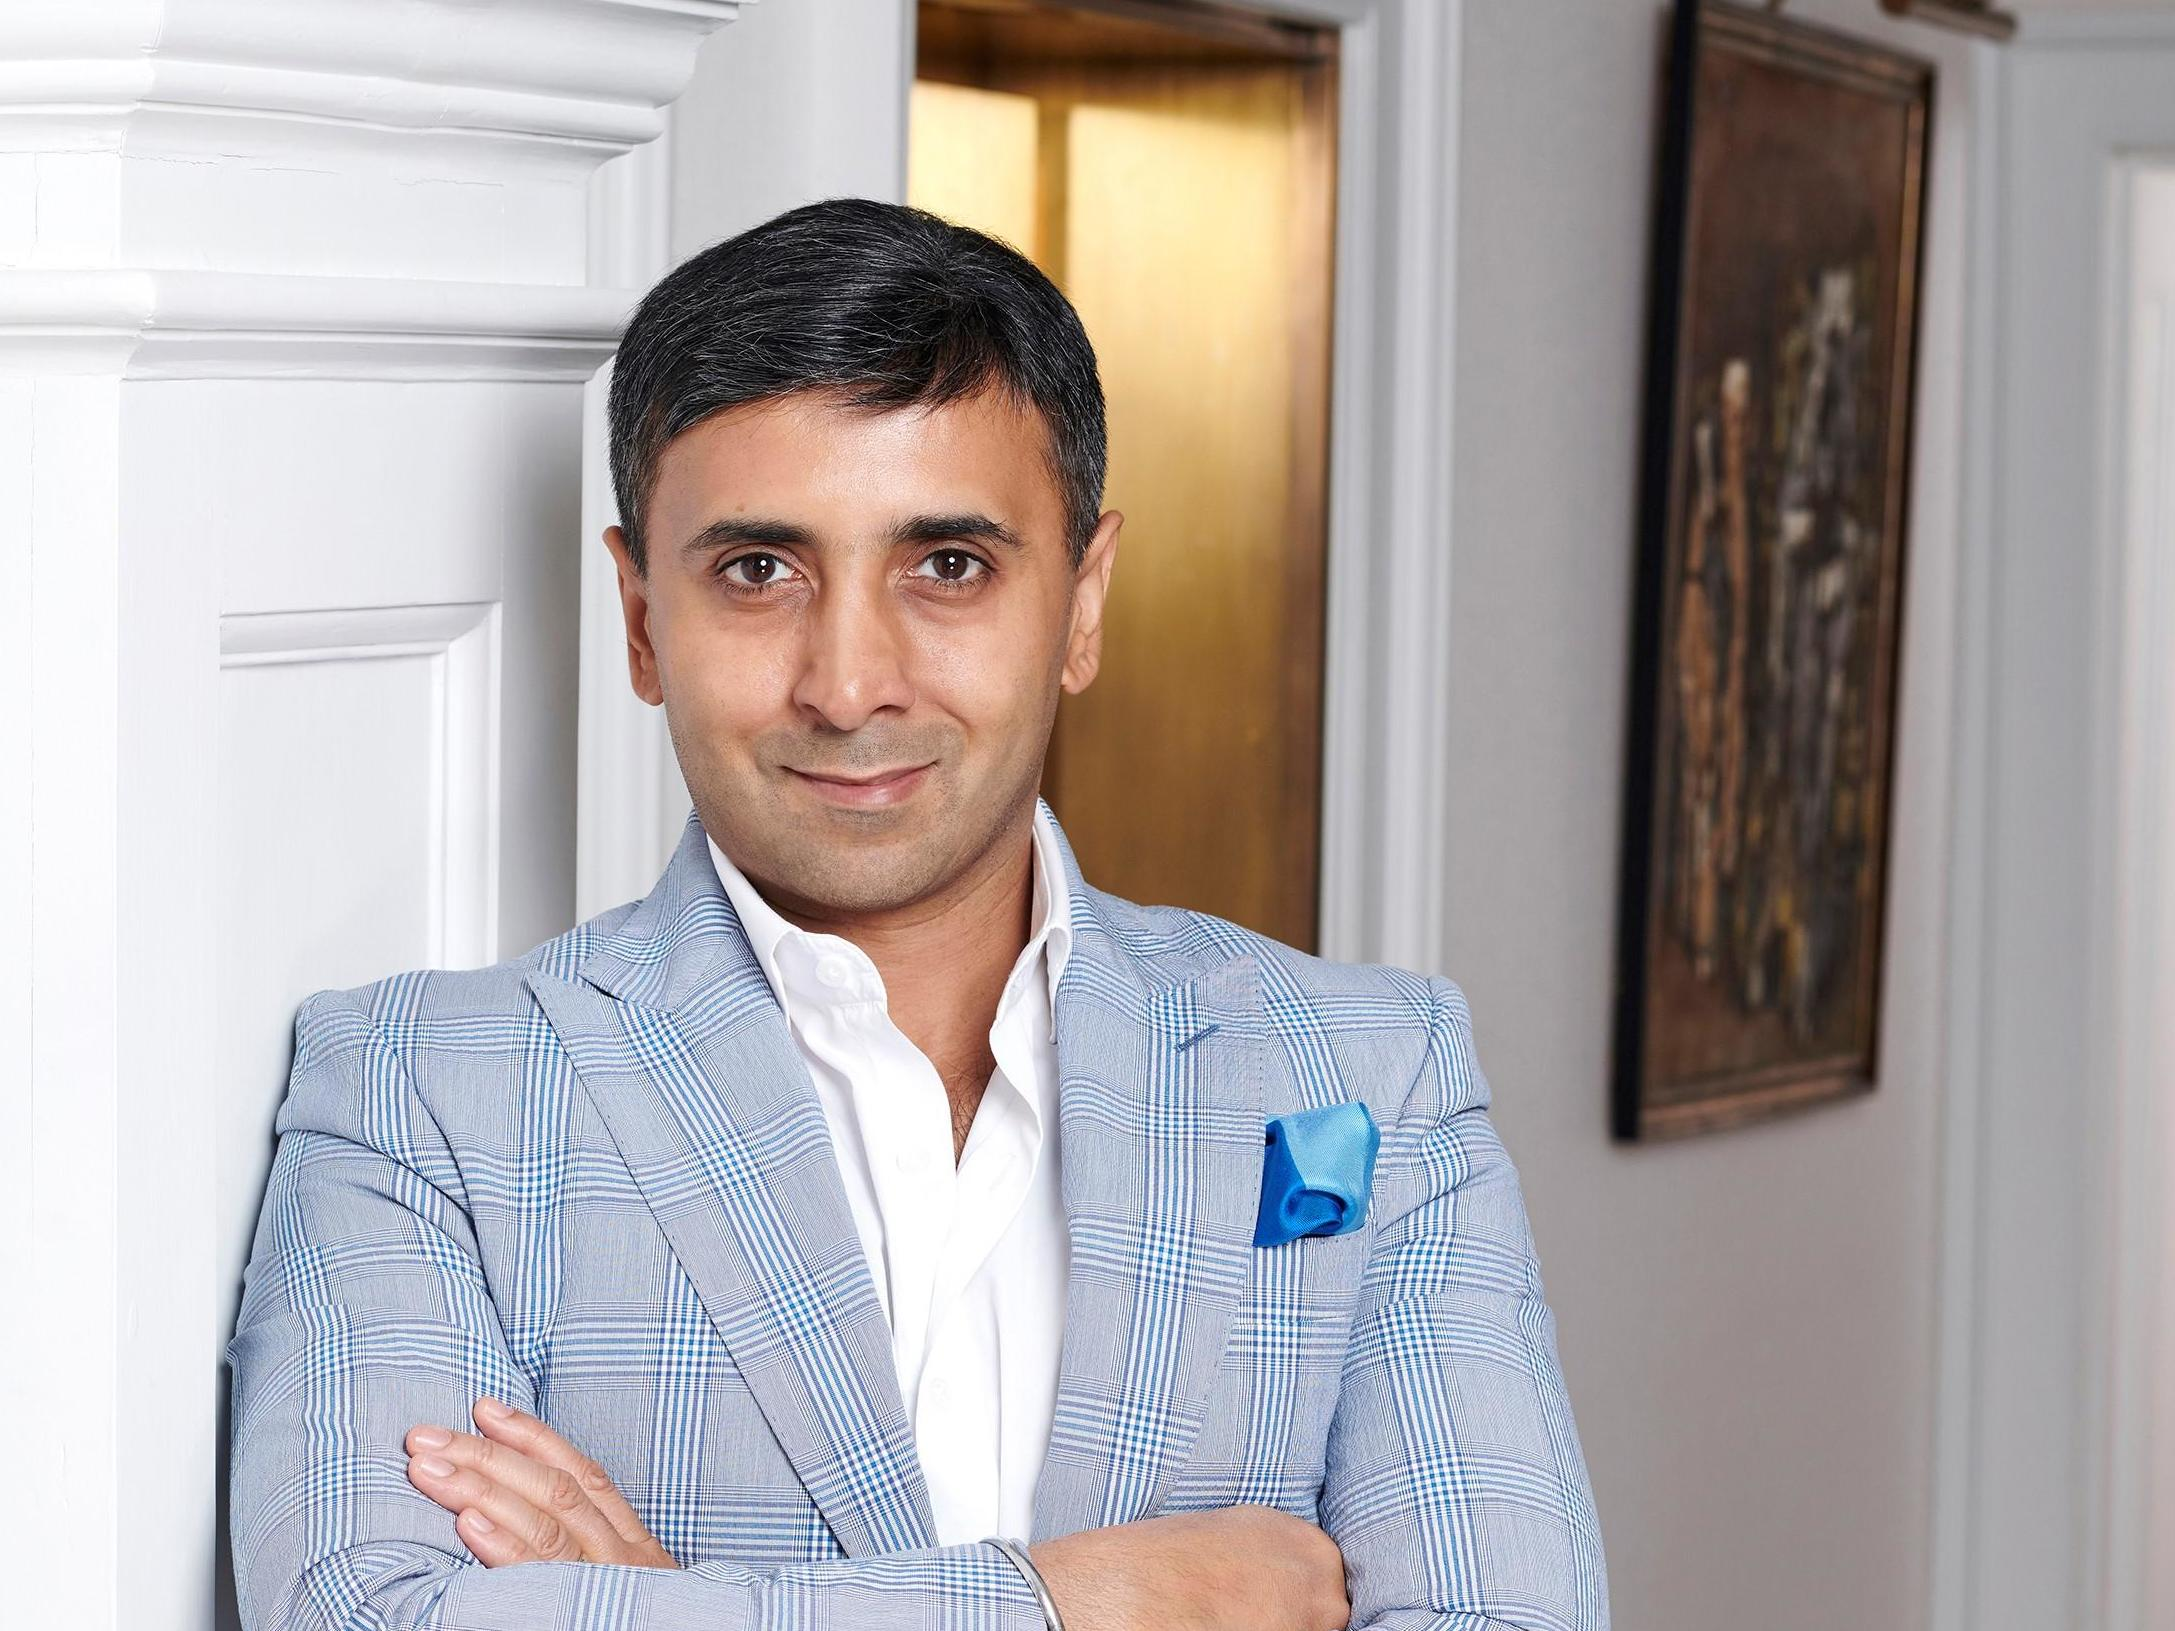 The 46-year old son of father (?) and mother(?) Tej Lalvani in 2021 photo. Tej Lalvani earned a  million dollar salary - leaving the net worth at  million in 2021